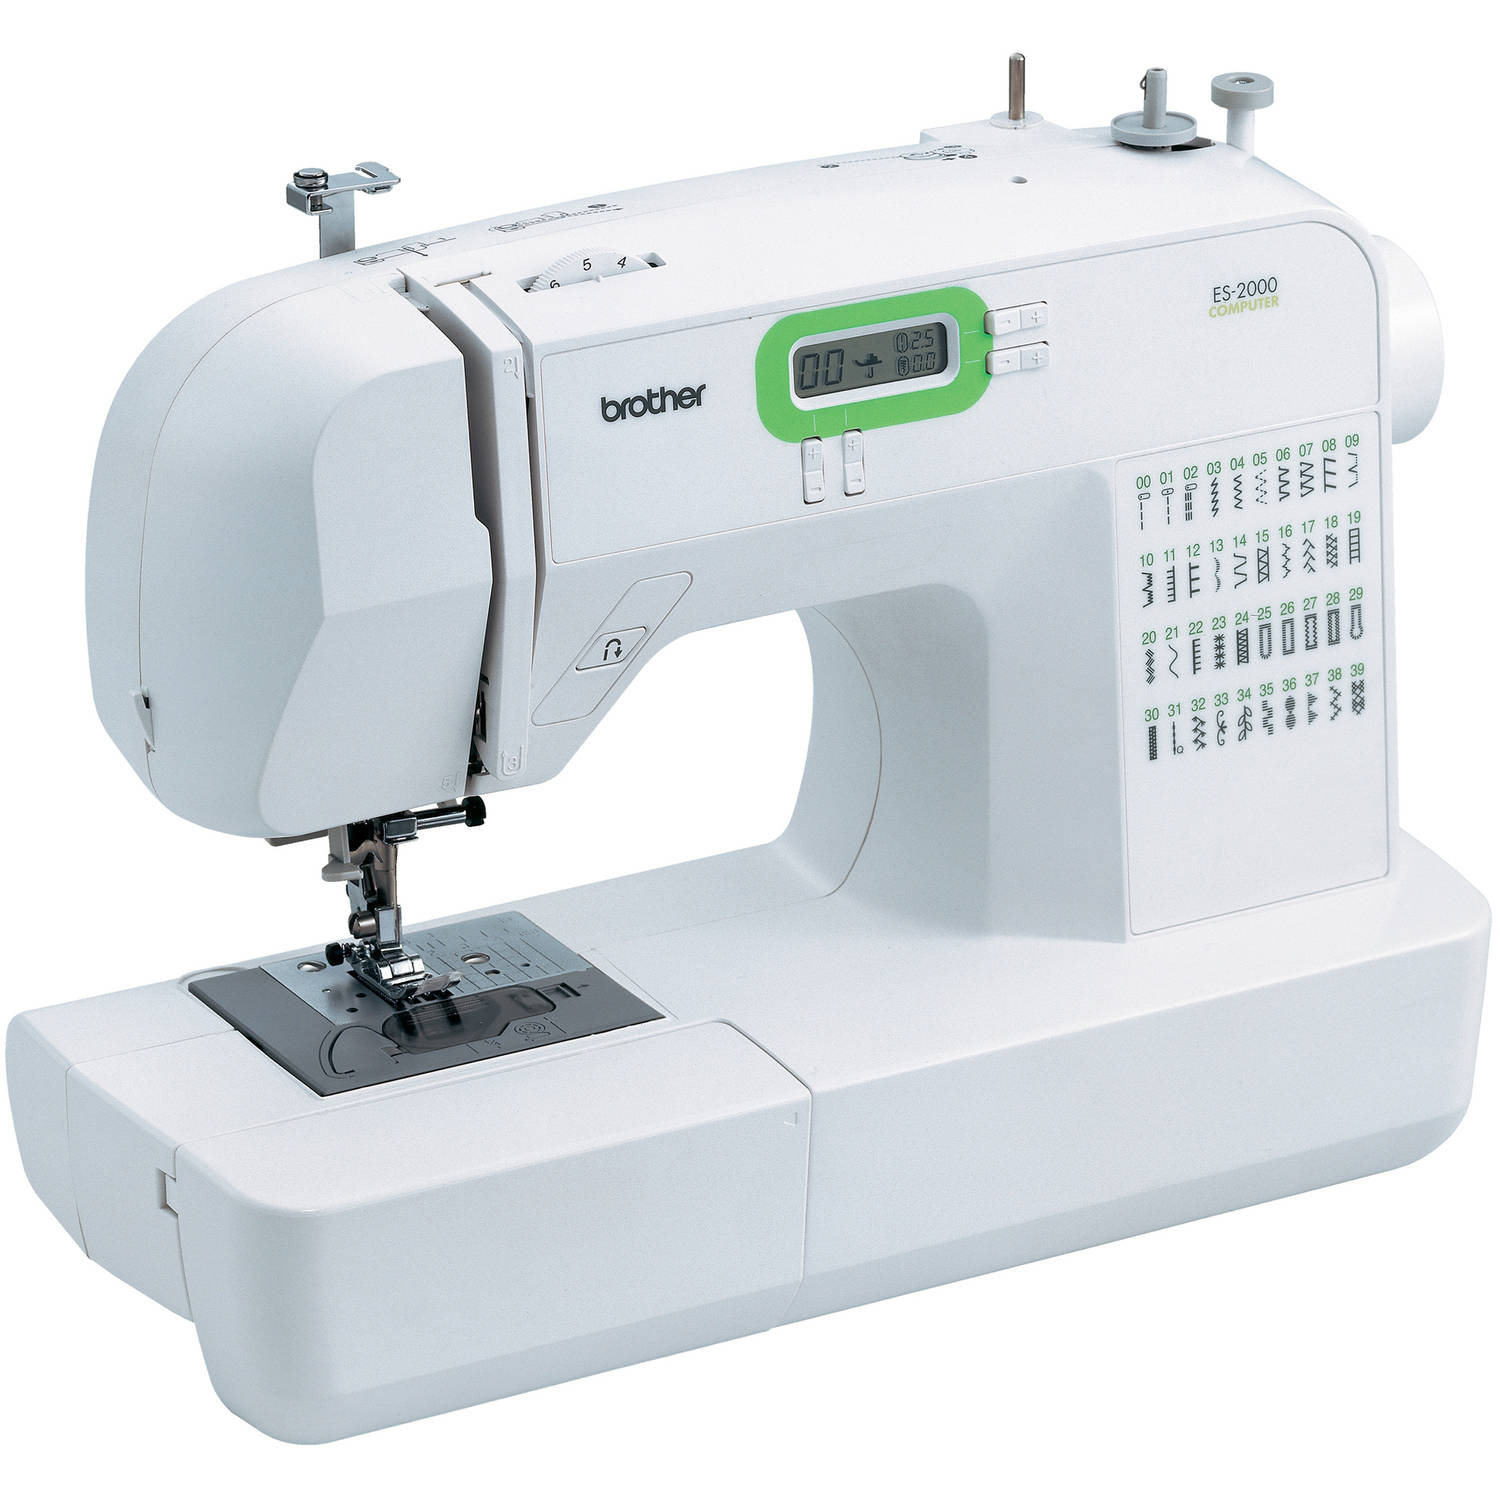 Brother 77 Stitch Function Computerized Free Arm Sewing Machine, ES2000